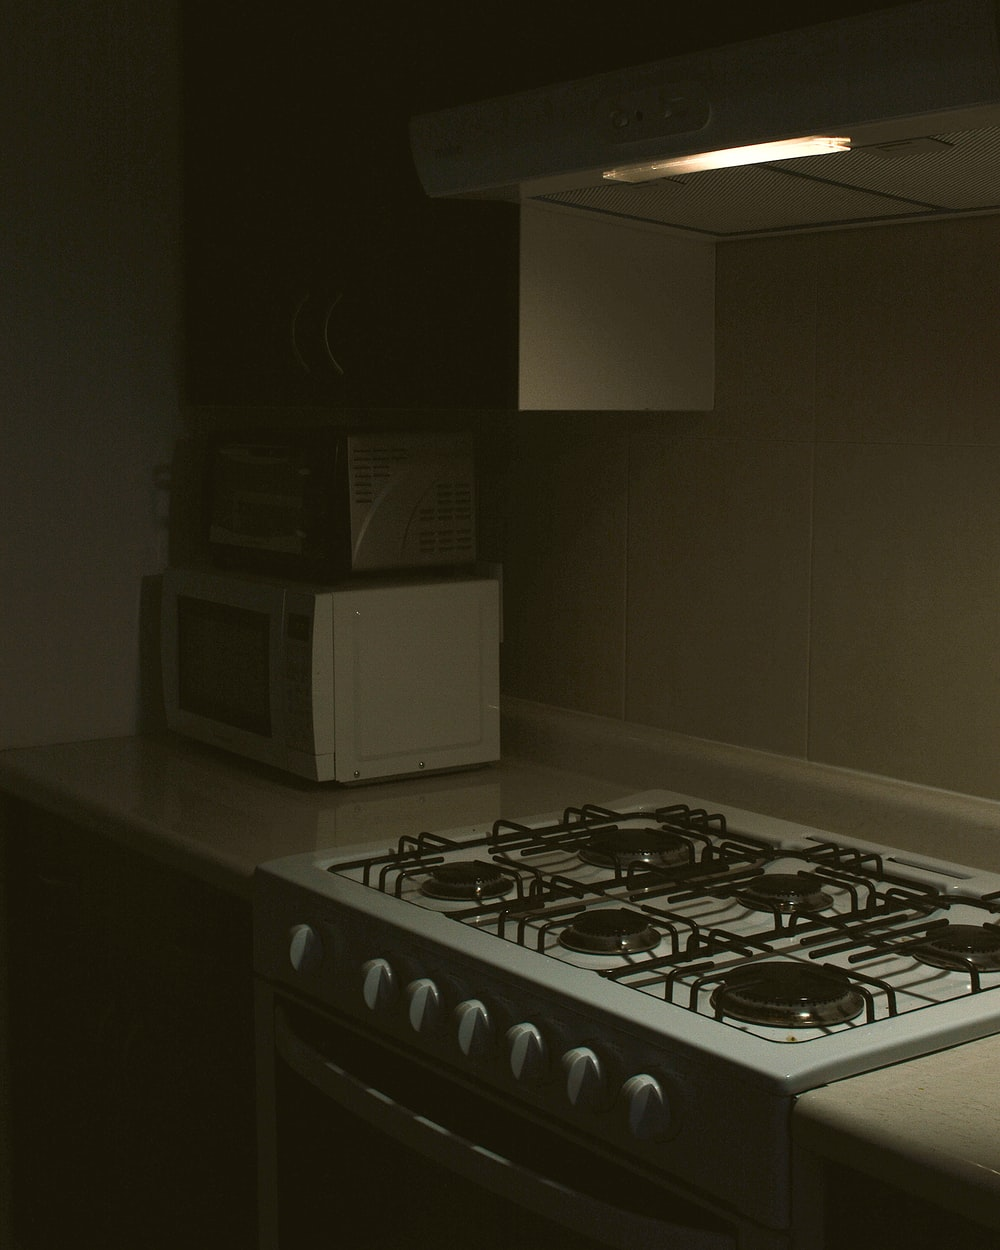 white microwave oven on black table